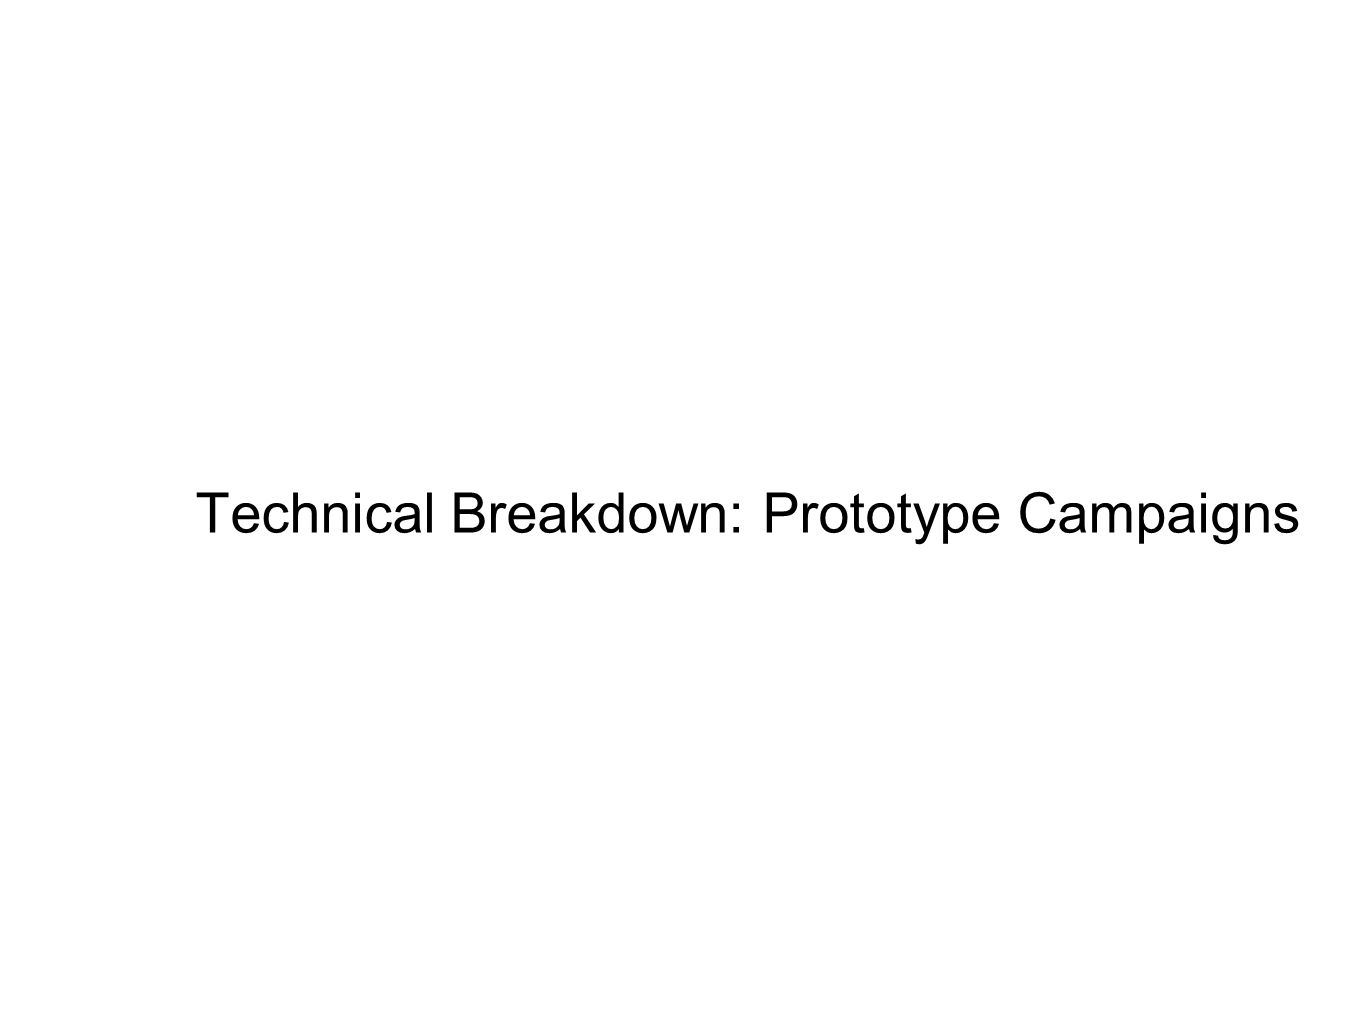 Technical Breakdown: Prototype Campaigns